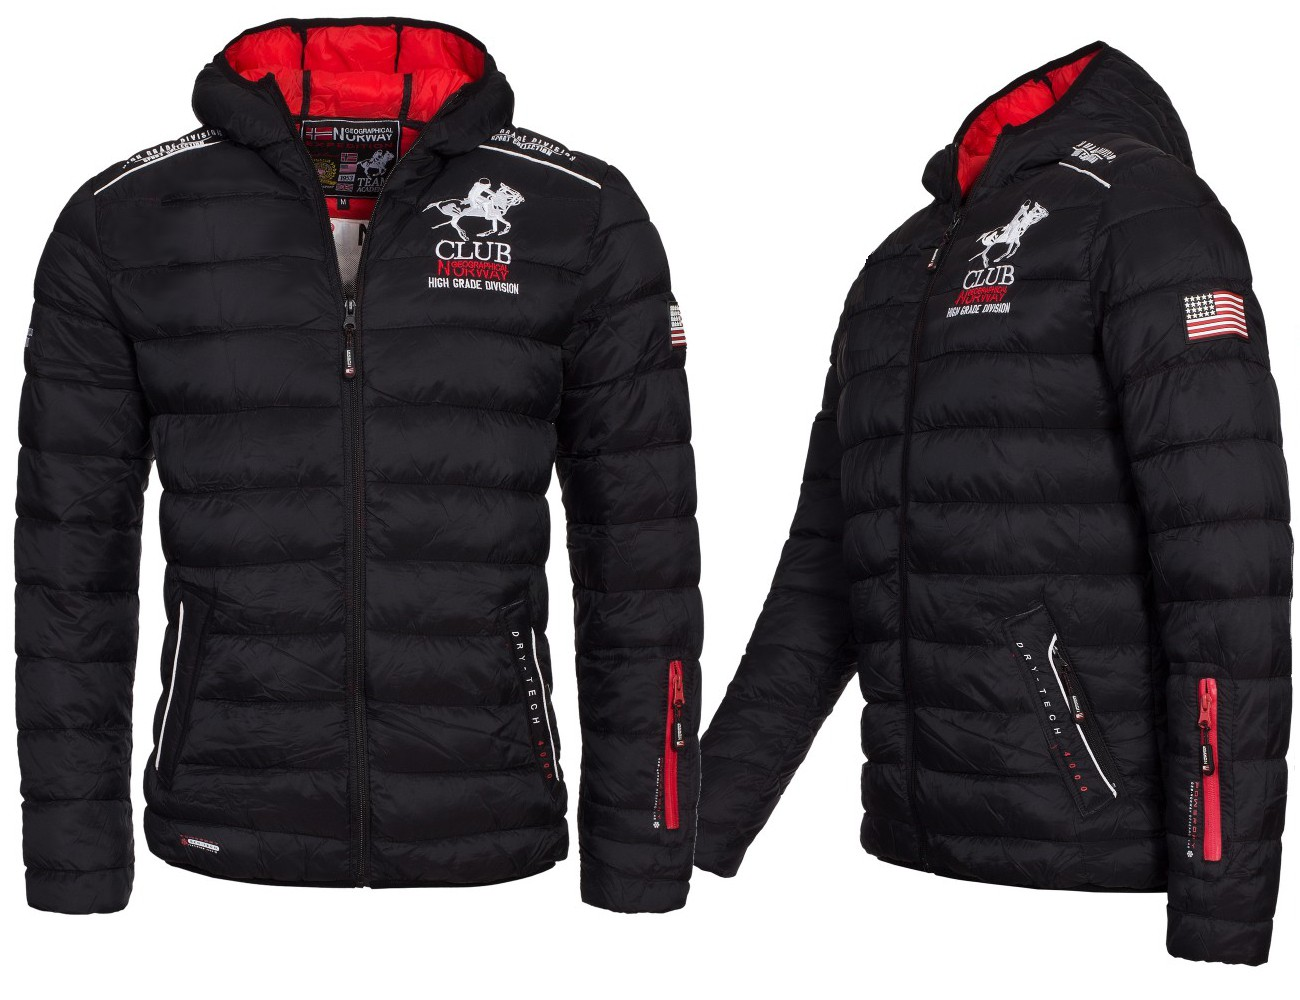 geographical norway becket herren winterjacke jacke steppjacke gr s xxl ebay. Black Bedroom Furniture Sets. Home Design Ideas